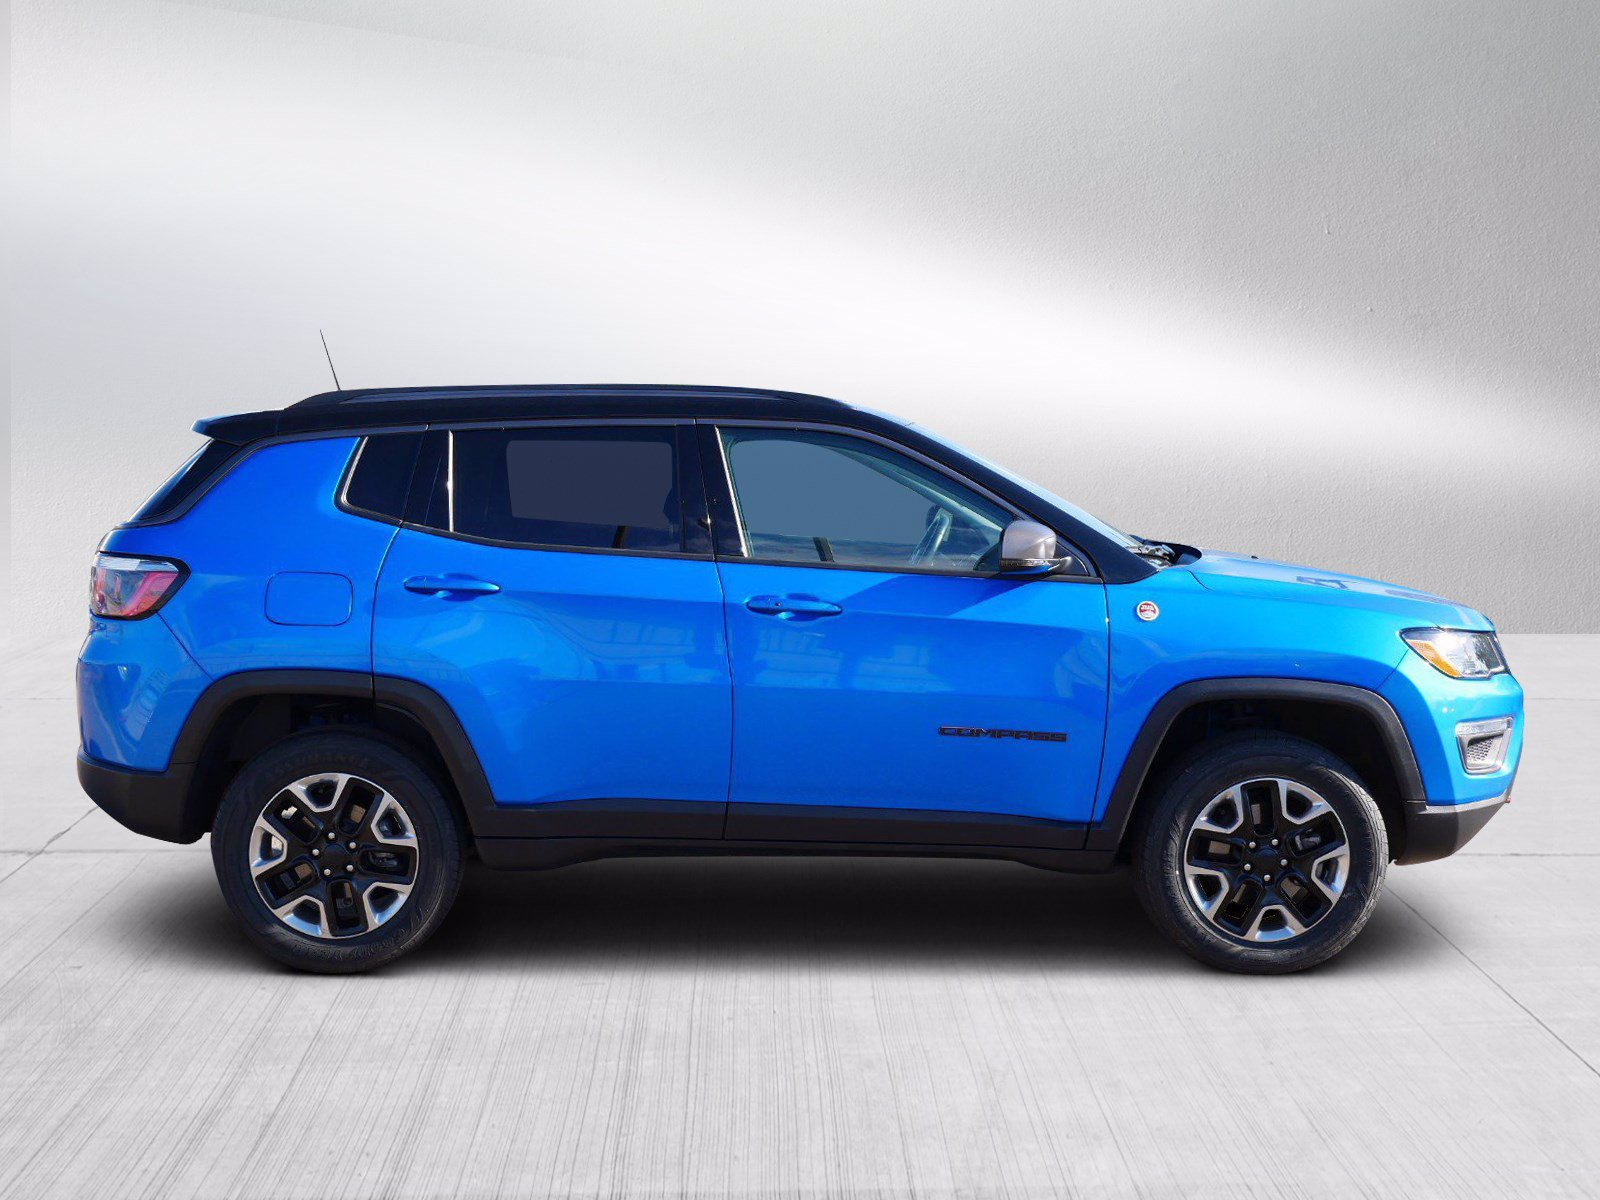 Used 2018 Jeep Compass Trailhawk with VIN 3C4NJDDB8JT210517 for sale in Bloomington, Minnesota